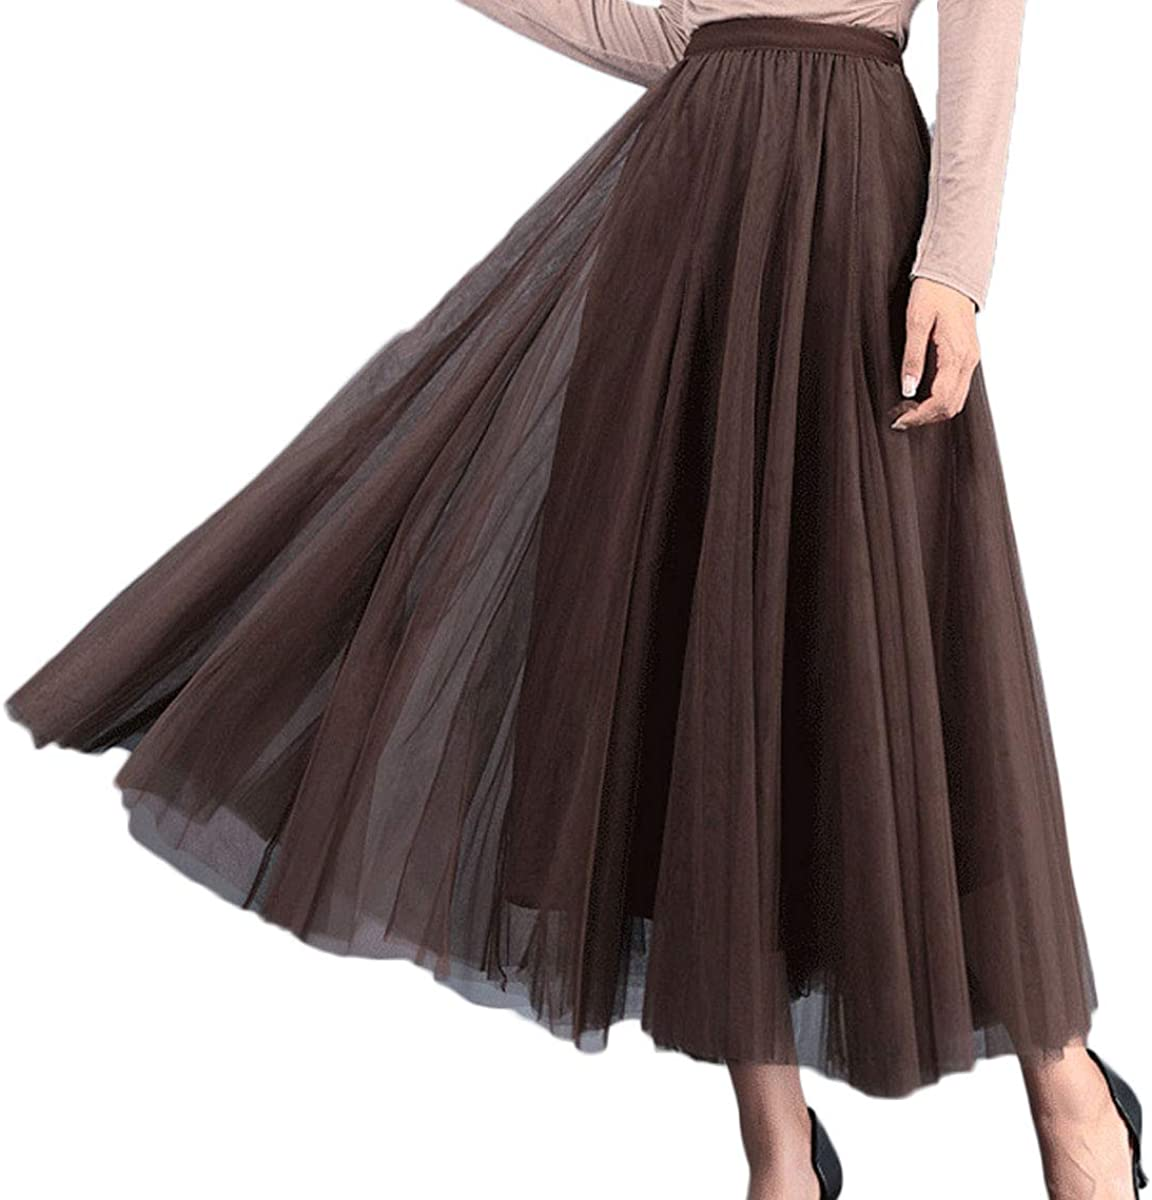 Women Mesh Tulle Stretch High Waist Swing Long Skirts One Size Spring Summer Casual Prom Formal Skirt